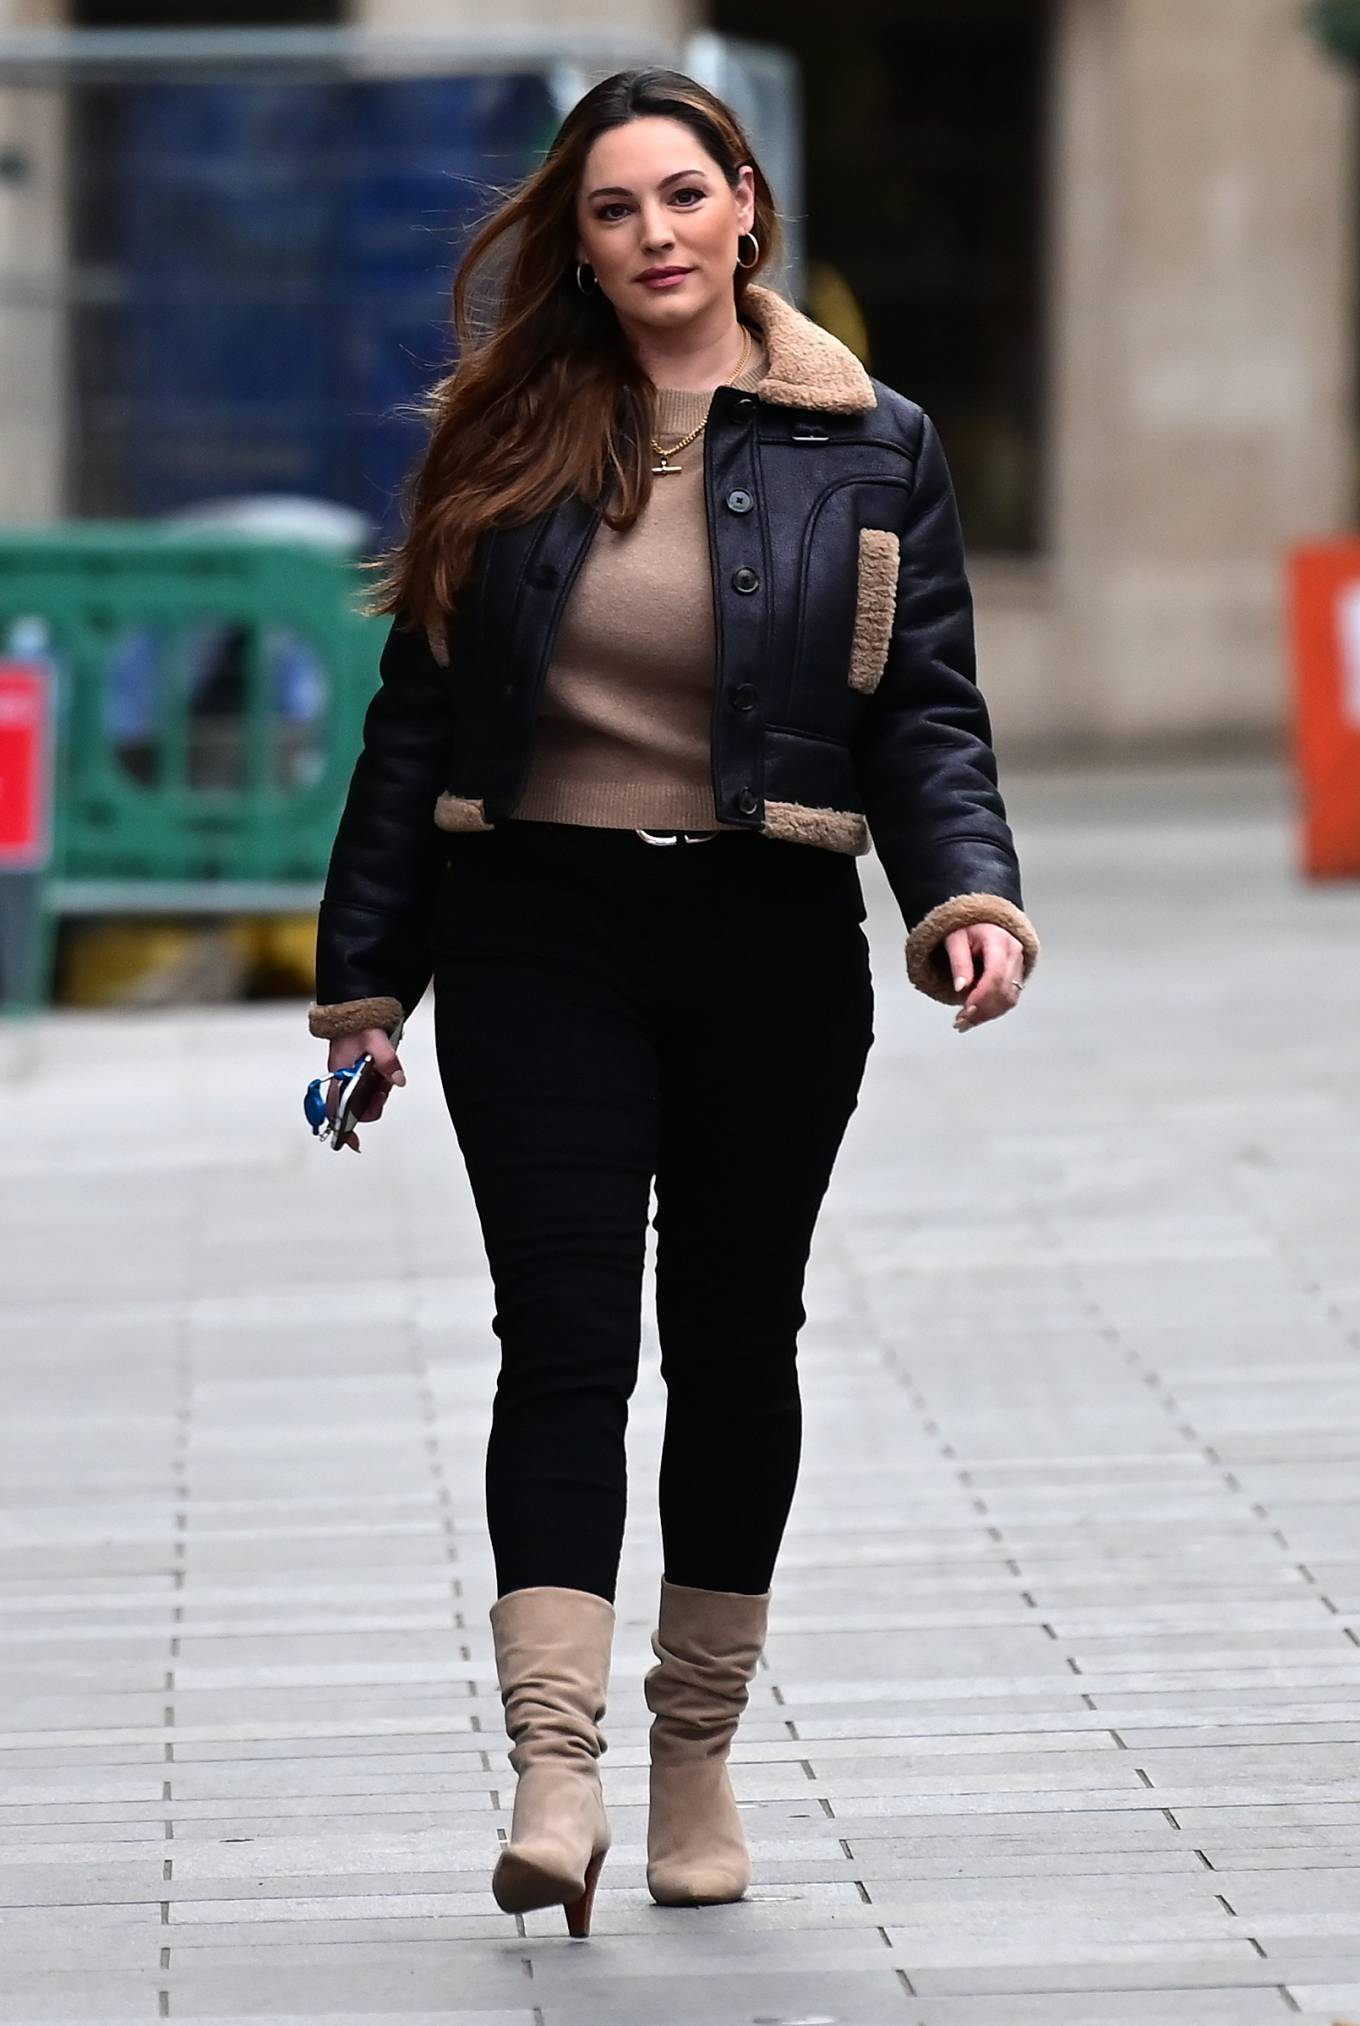 Kelly Brook - Pictured arriving at the Global Radio Studios in London